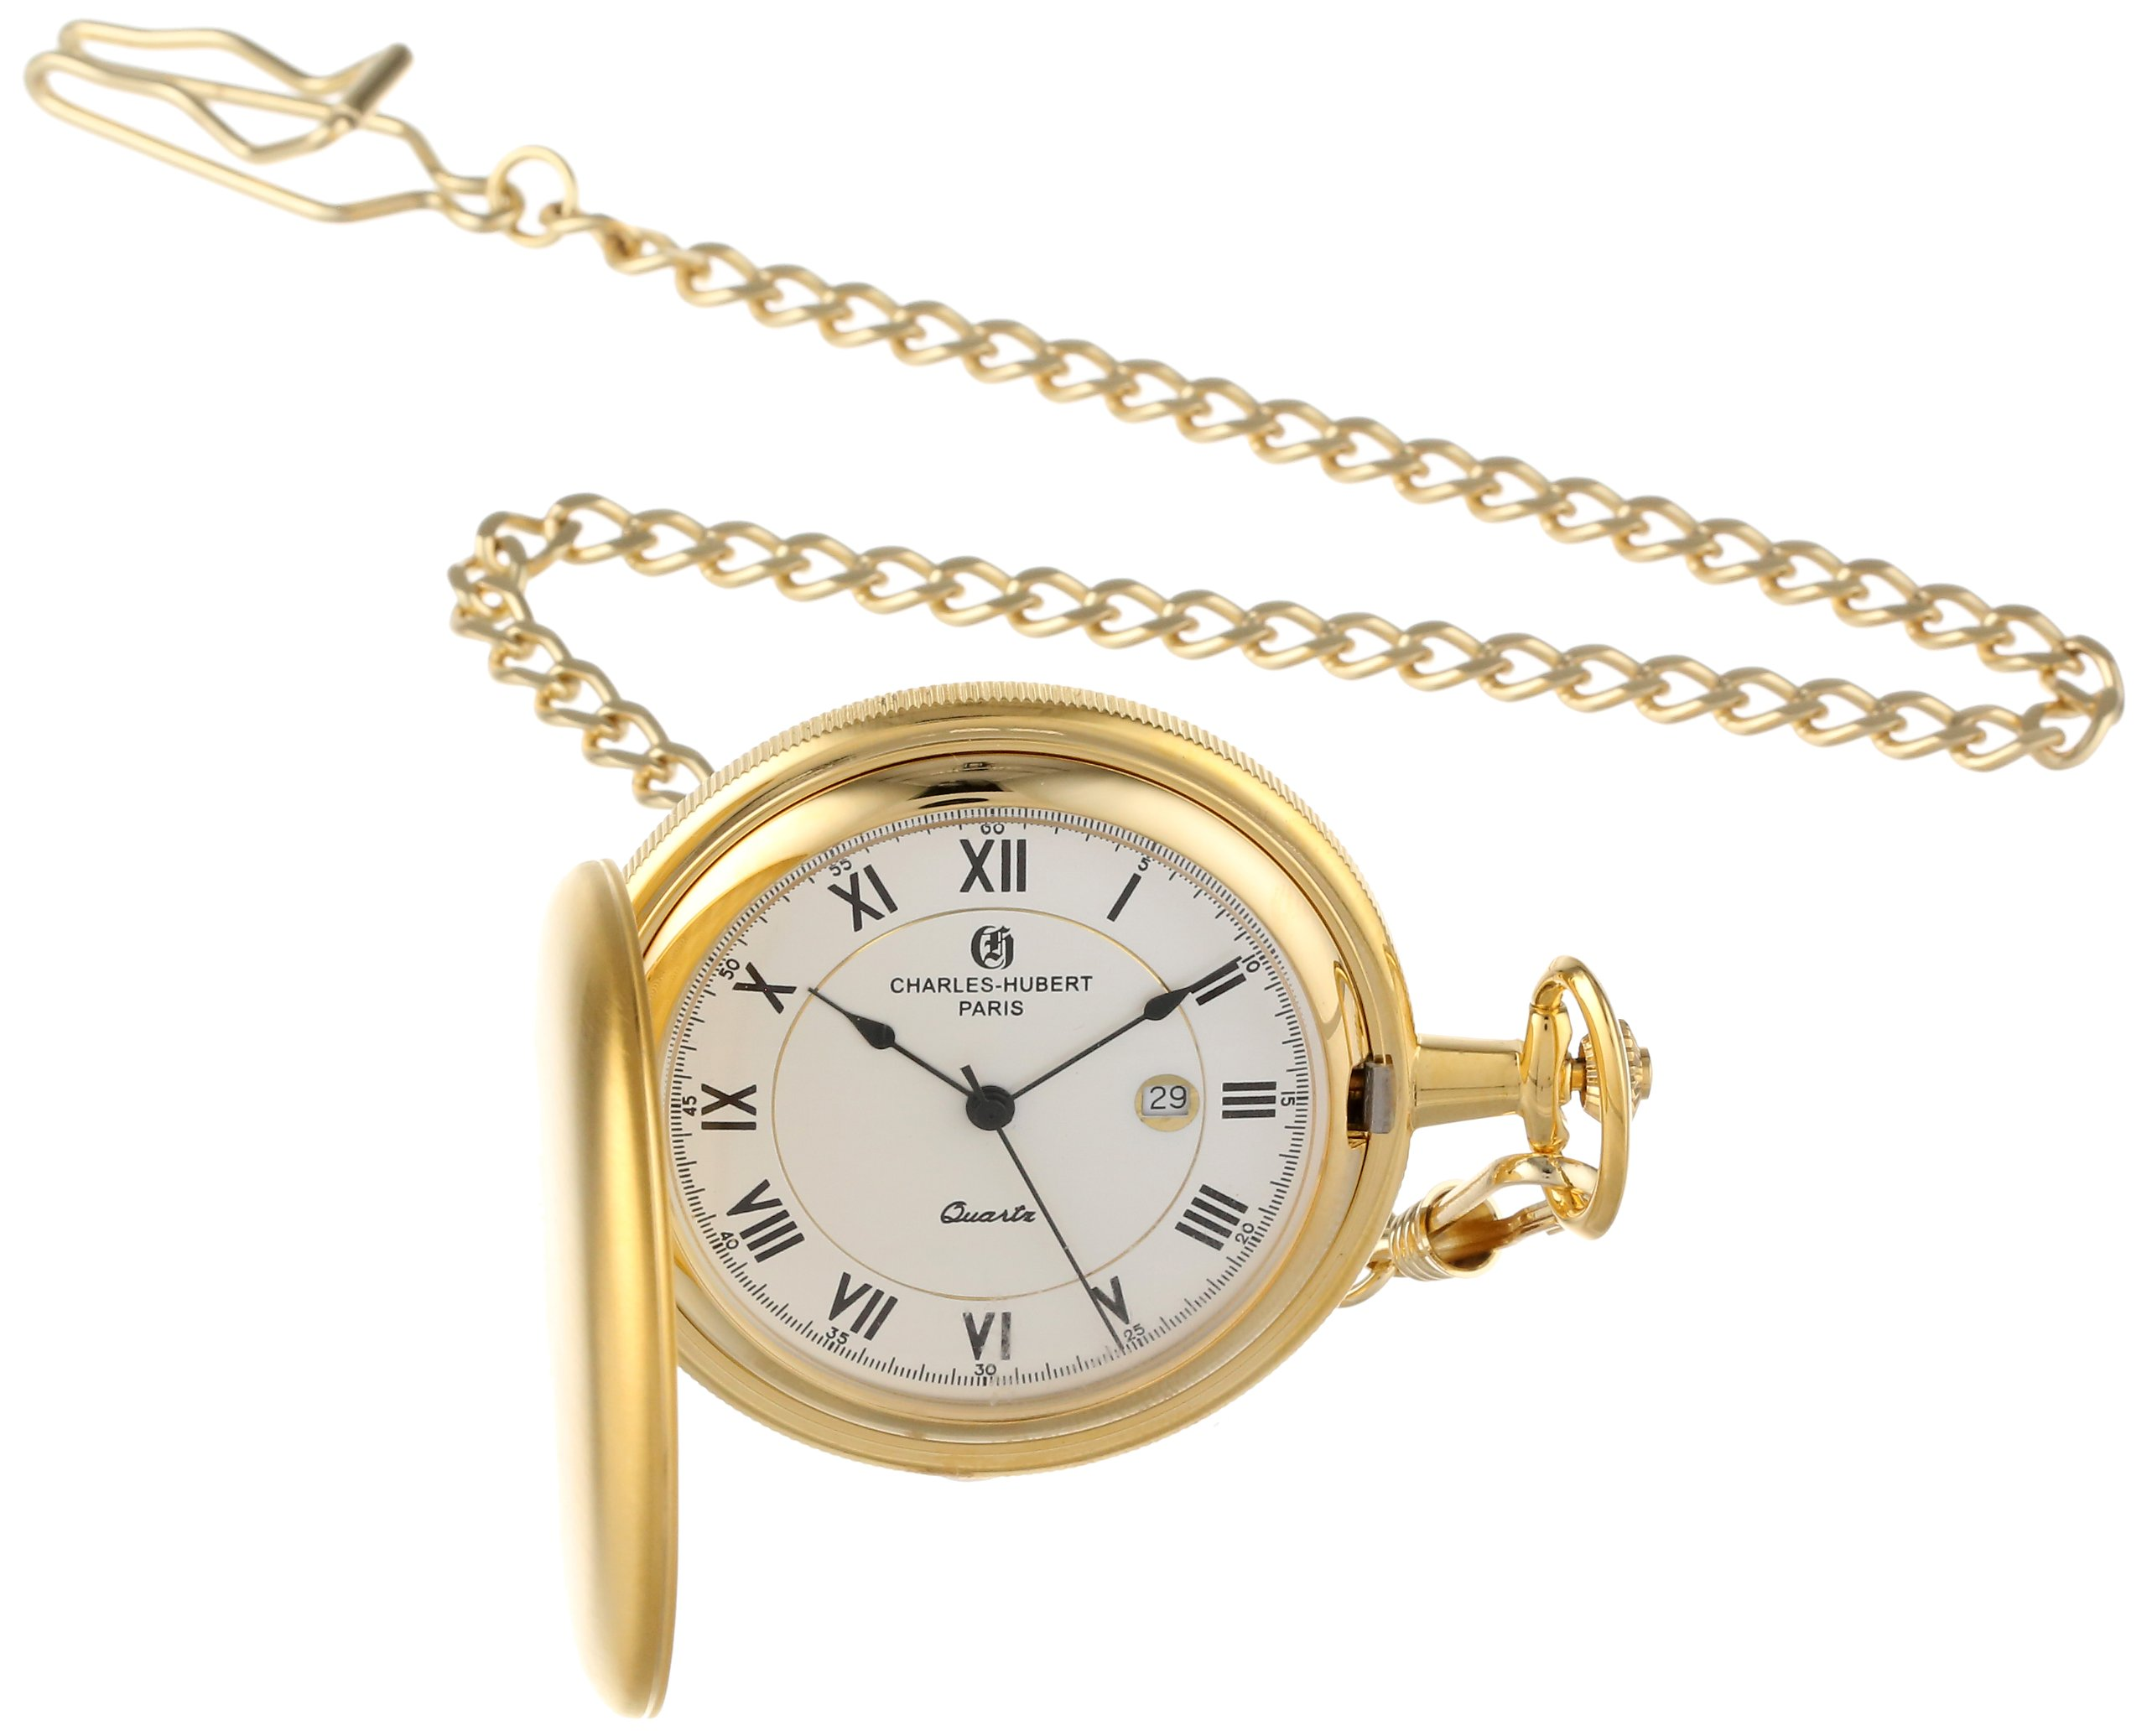 Charles-Hubert, Paris 3939 Classic Collection Gold Plated Brass Pocket Watch by CHARLES-HUBERT PARIS